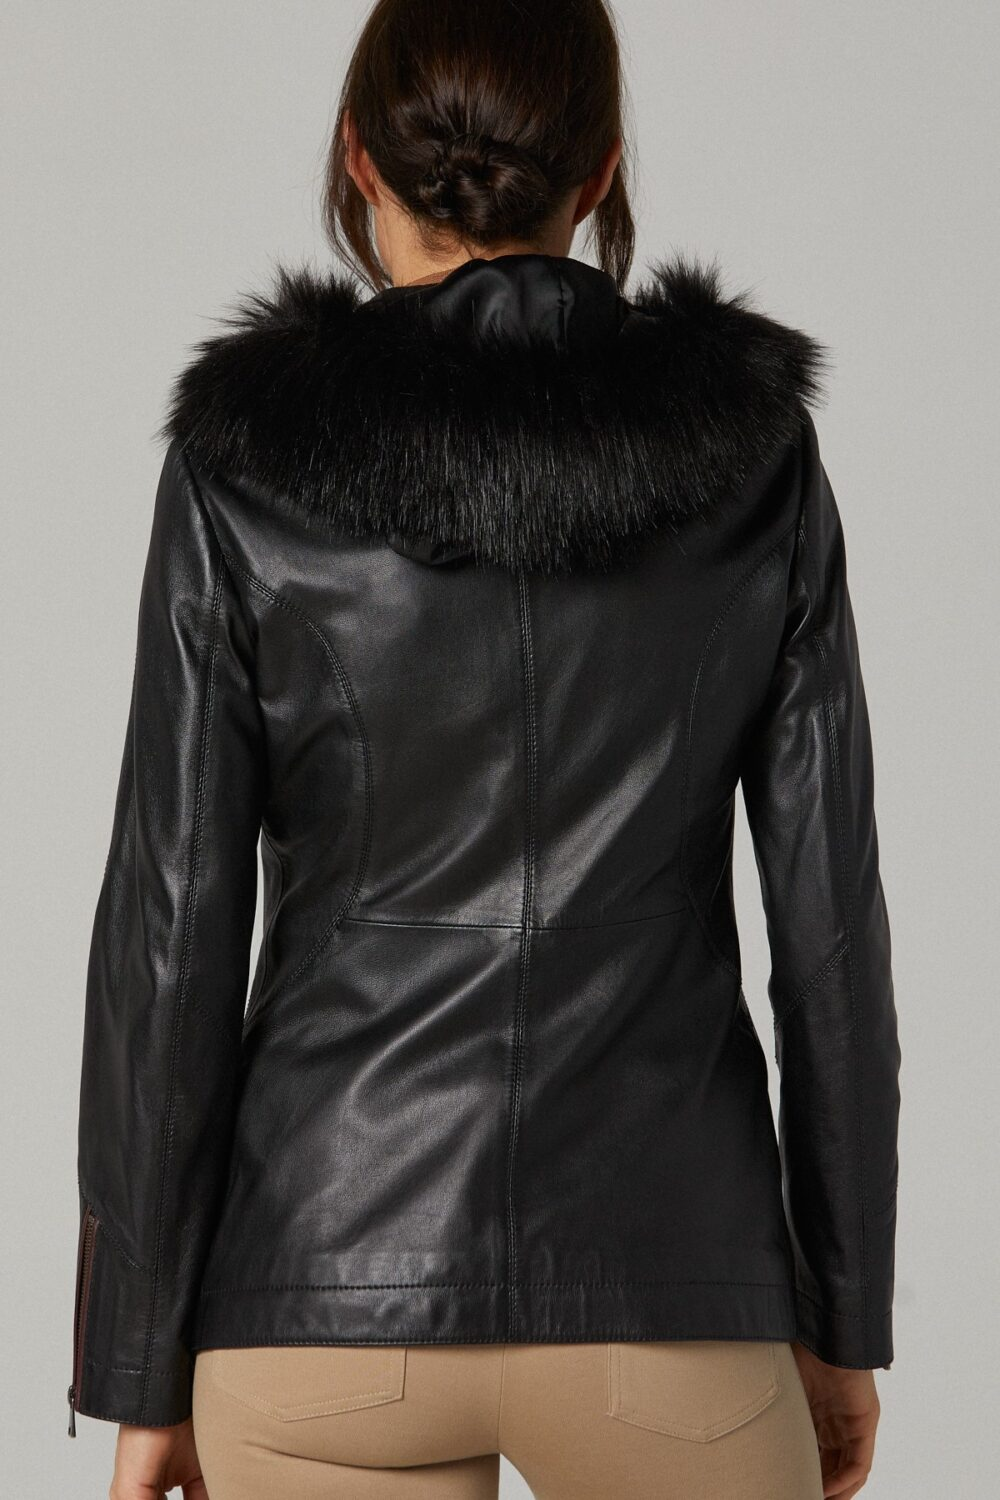 Insulated Leather Jacket Womens